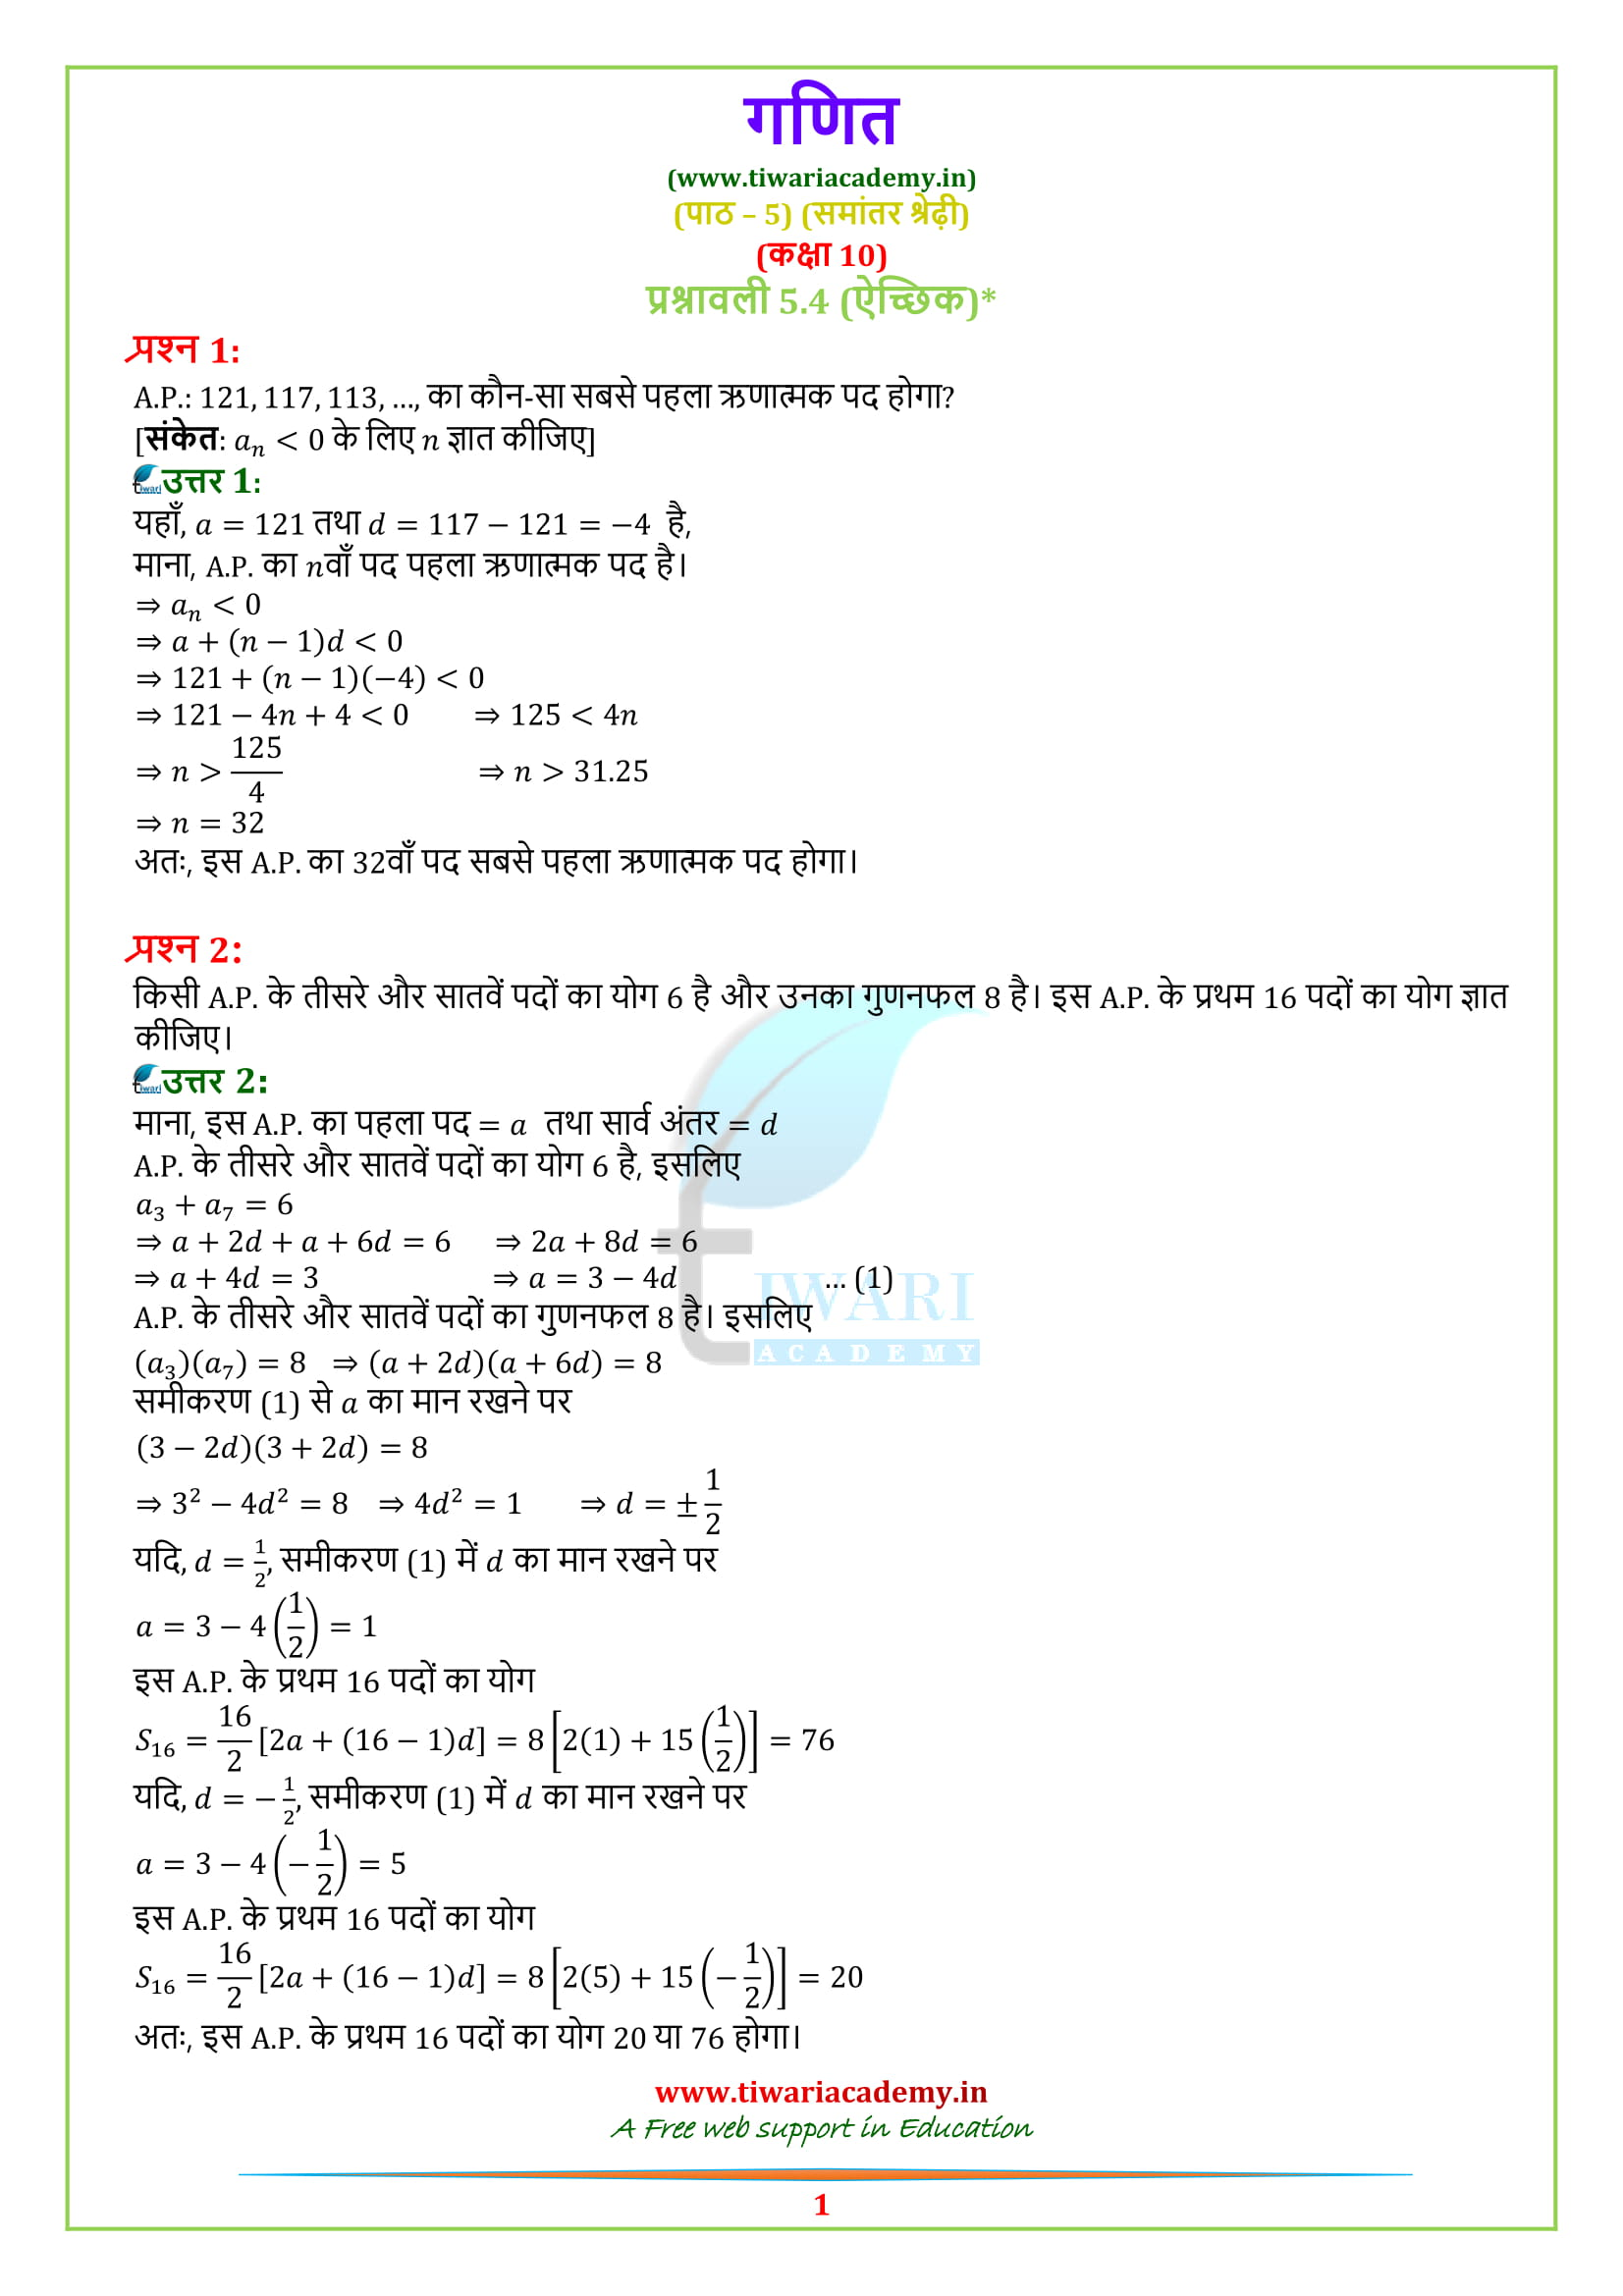 10 Maths exercise 5.4 solutions in Hindi